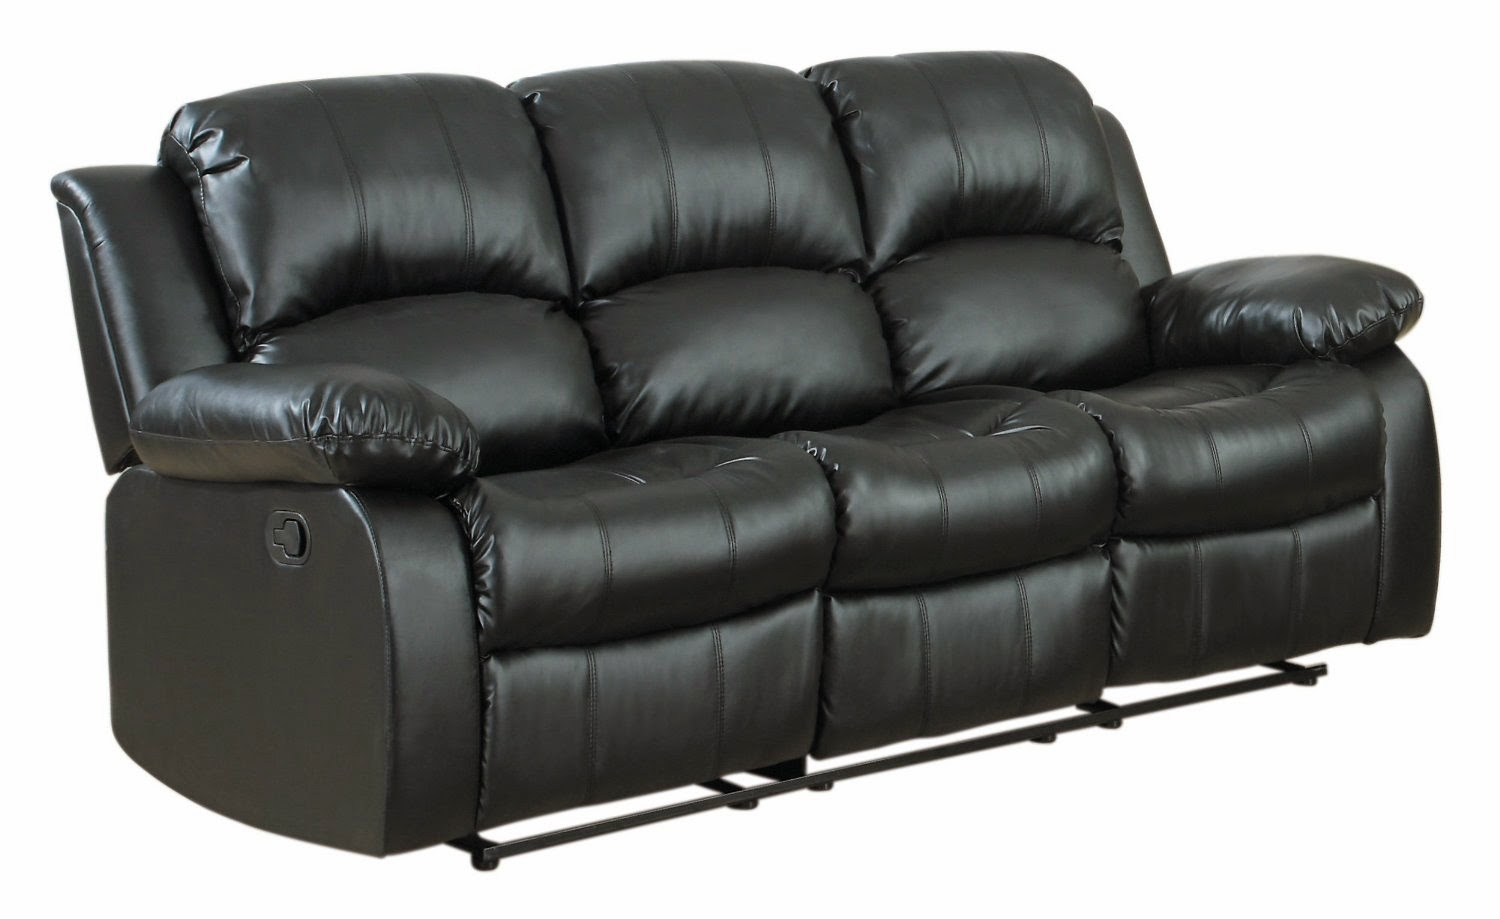 Cheap Recliner Sofas For Sale: Black Leather Reclining ...